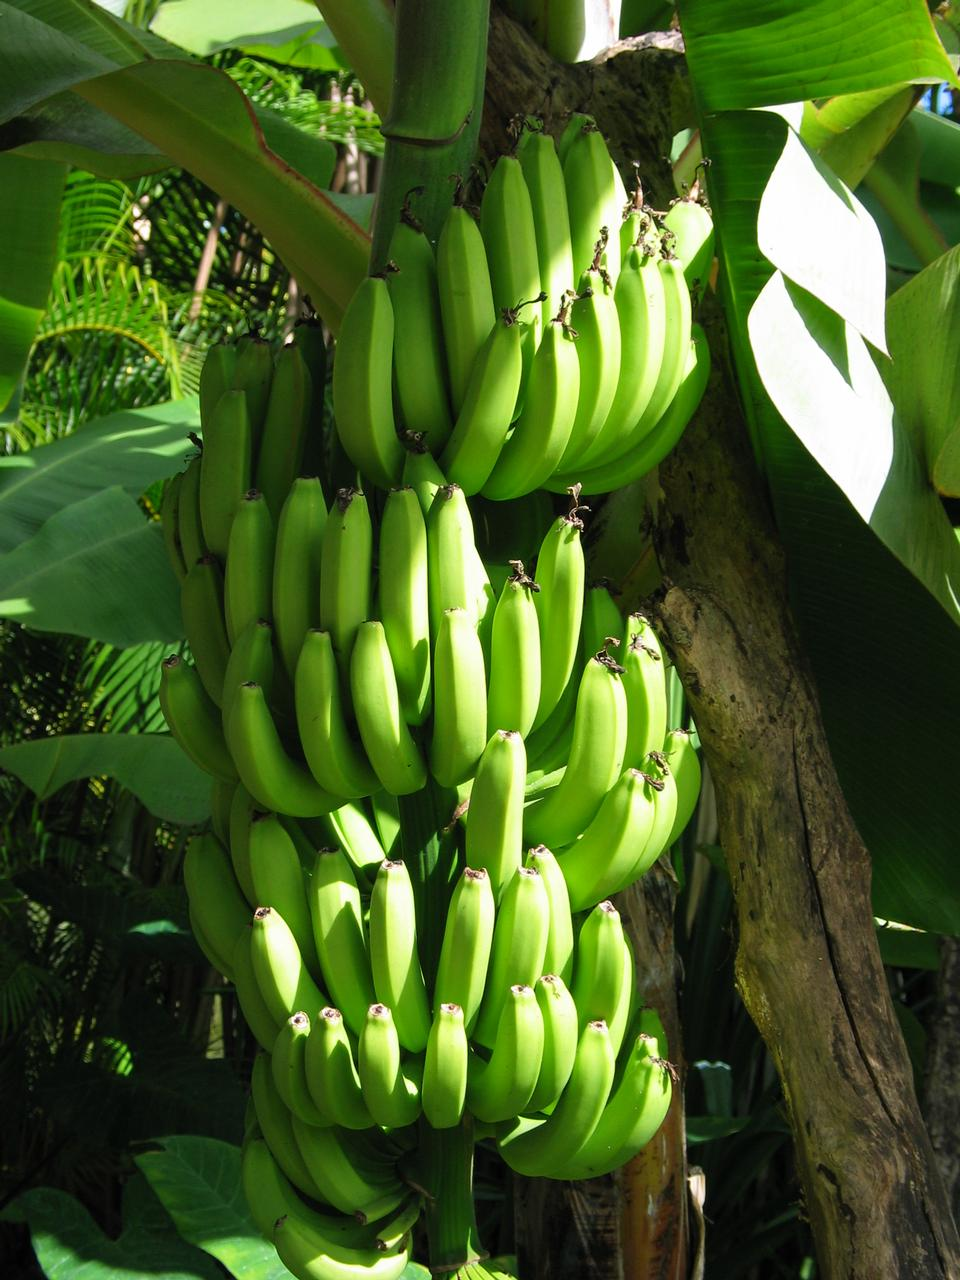 Free Bananas Growing In Bunches